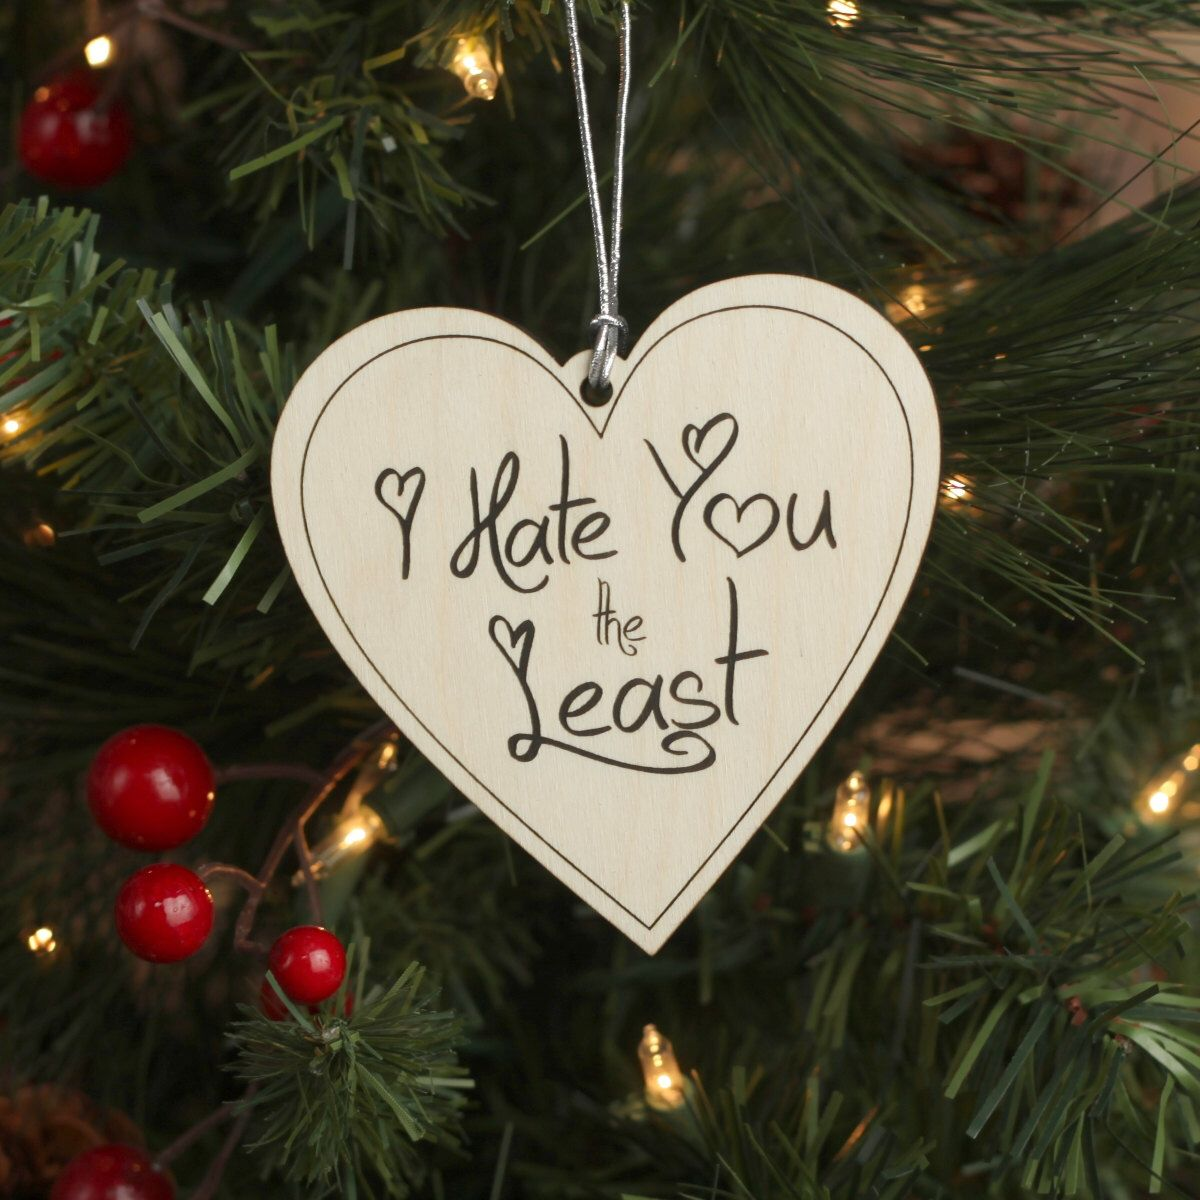 I Hate You the Least Christmas Tree Heart Ornament - Funny Personalized Christmas Ornaments by NorthCountryWoodShop on Etsy https://www.etsy.com/listing/474987886/i-hate-you-the-least-christmas-tree